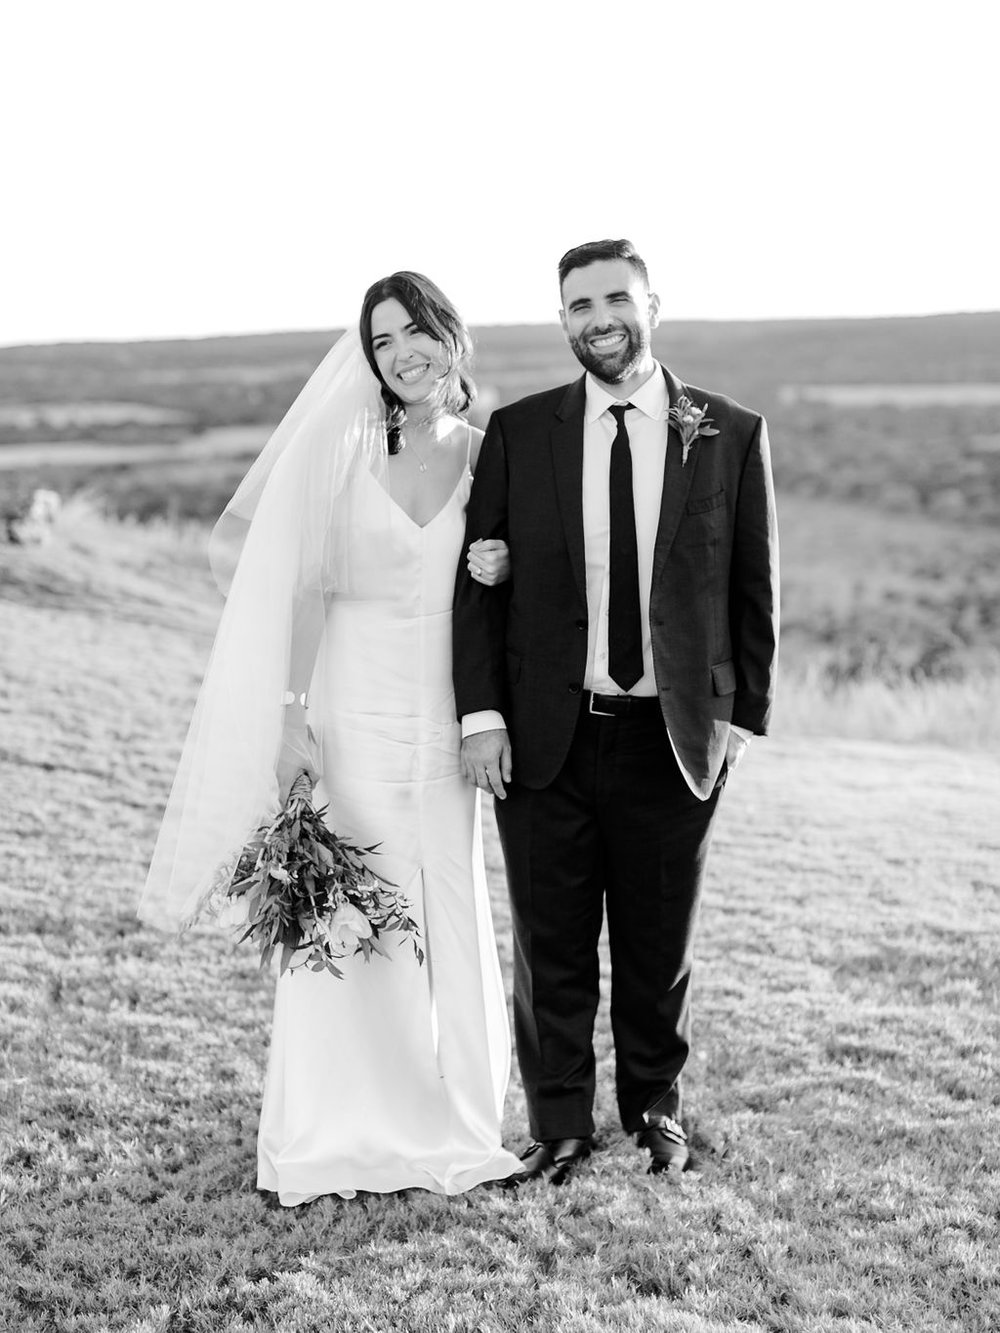 Austin-Film-Wedding-Photographer-Contigo-Ranch-Modern-120.jpg